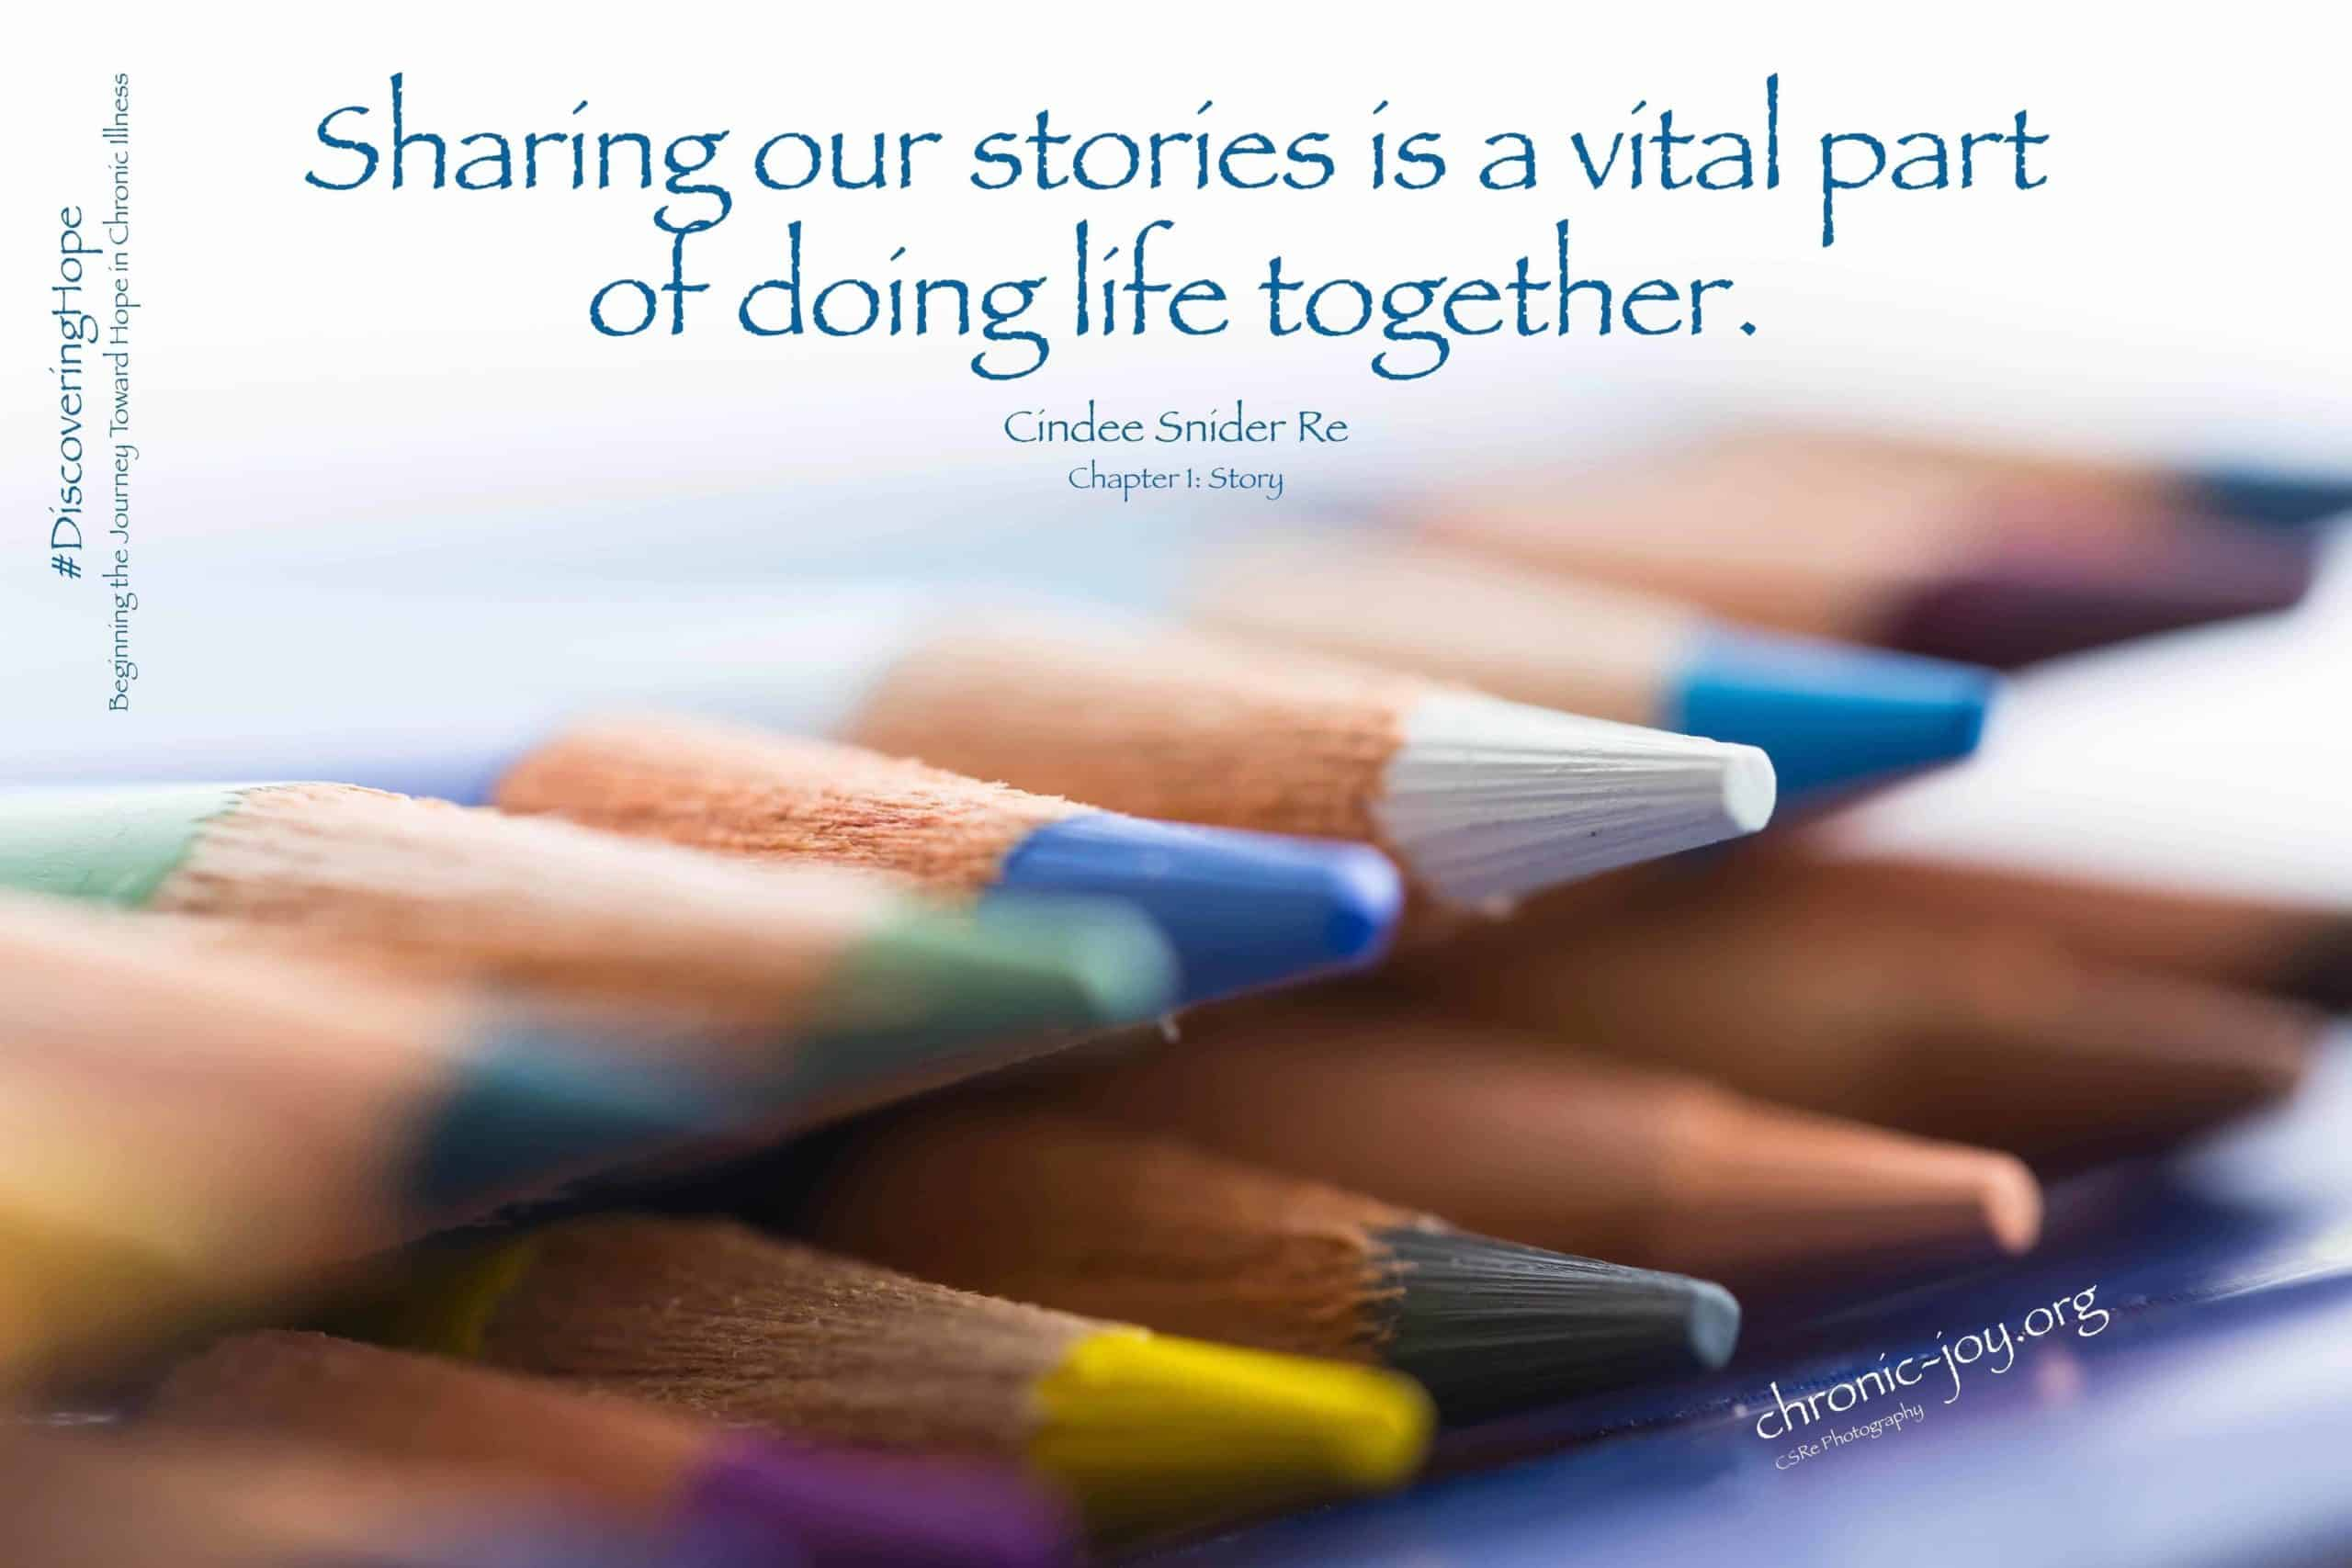 Sharing our stories is vital